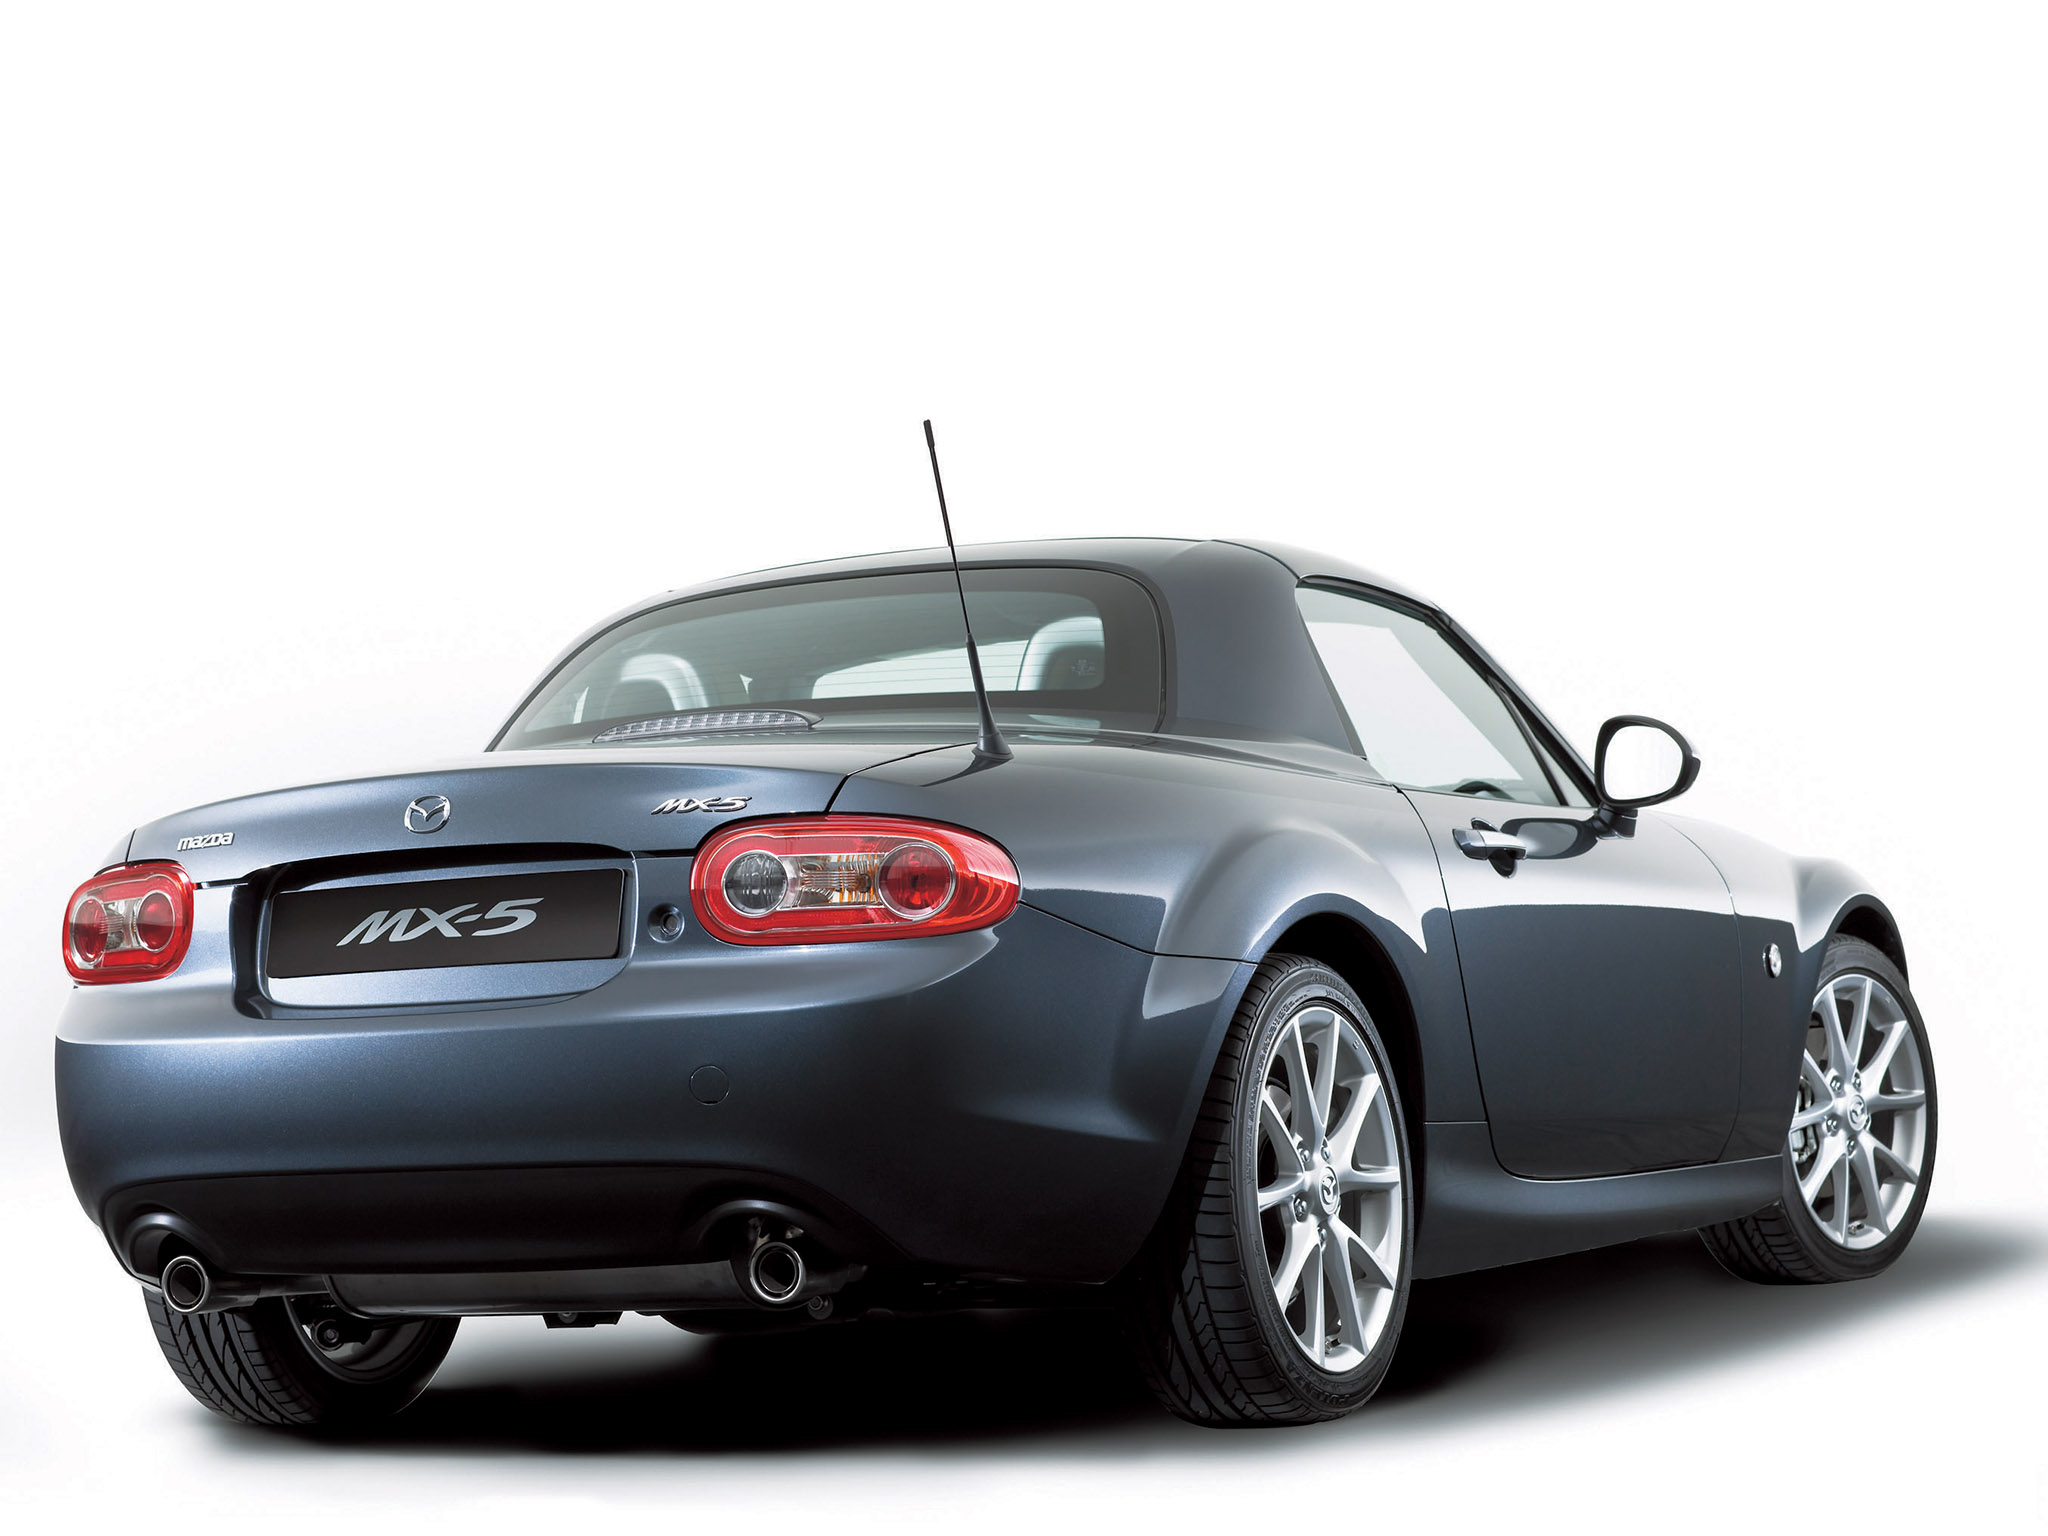 mazda mx 5 roadster coupe 2008 mazda mx 5 roadster coupe 2008 photo 02 car in pictures car. Black Bedroom Furniture Sets. Home Design Ideas